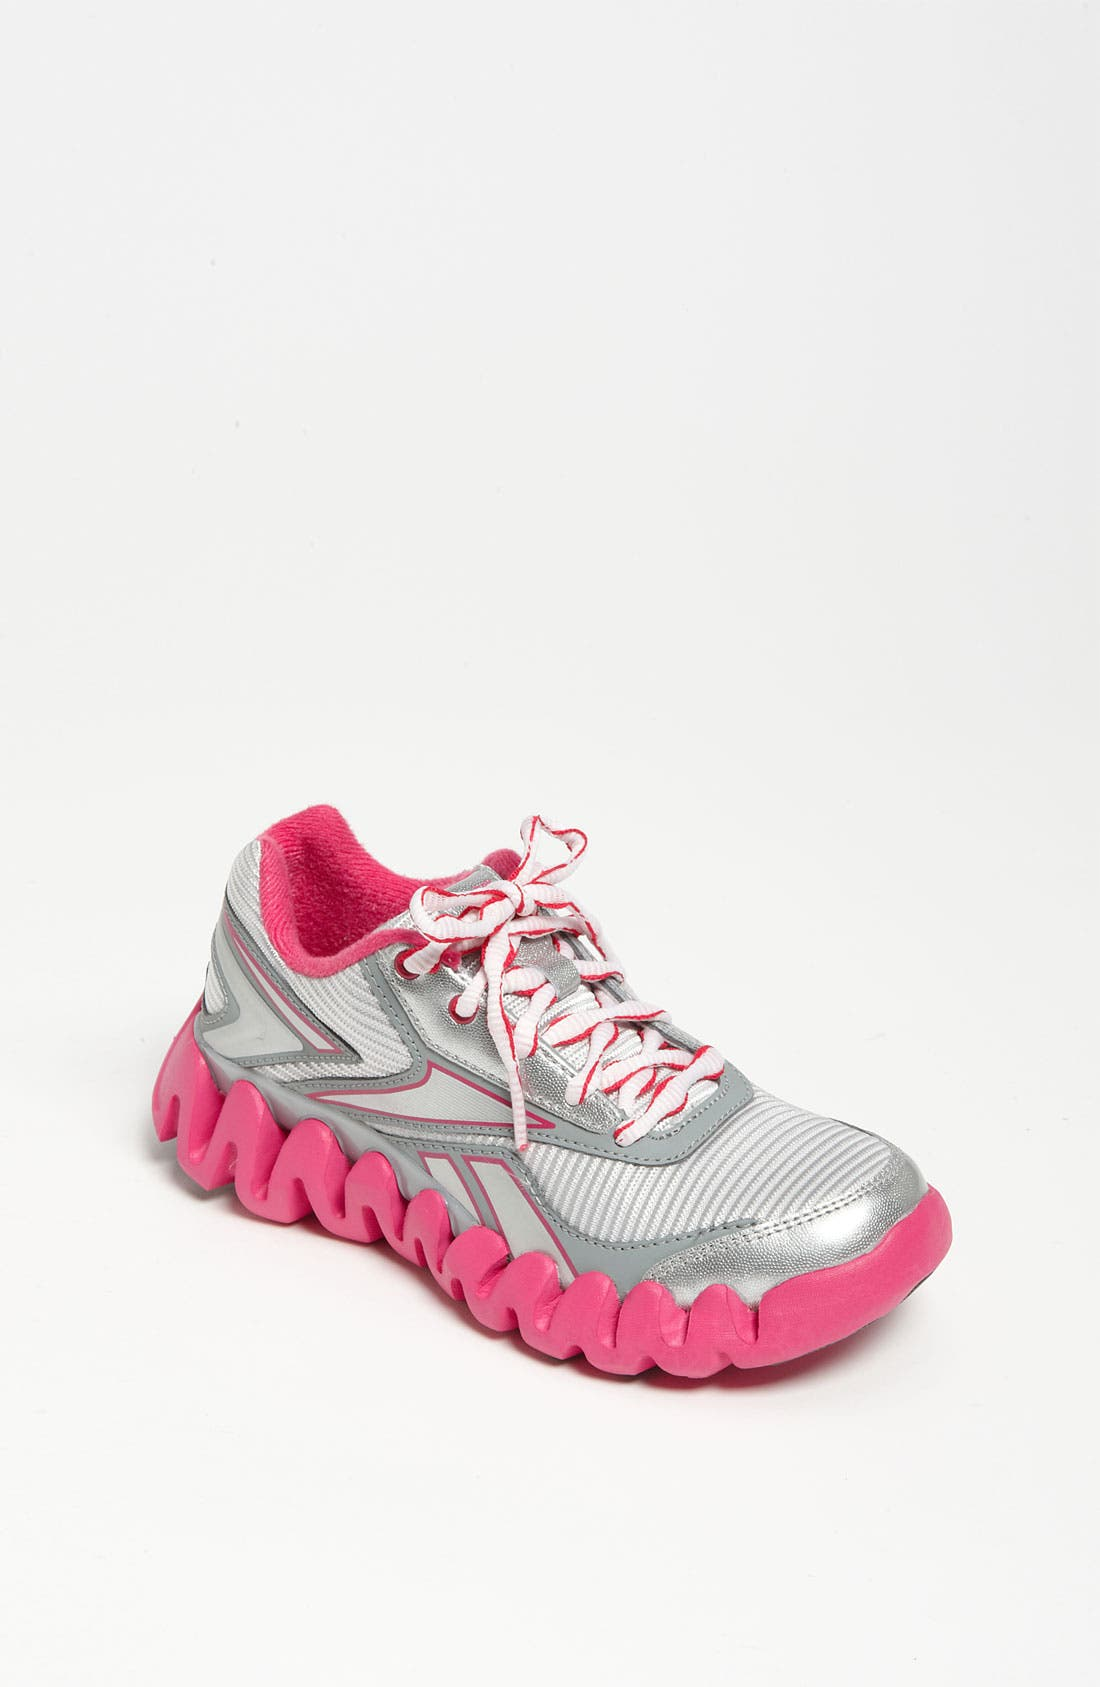 Alternate Image 1 Selected - Reebok 'ZigActivate' Running Shoe (Little Kid & Big Kid)